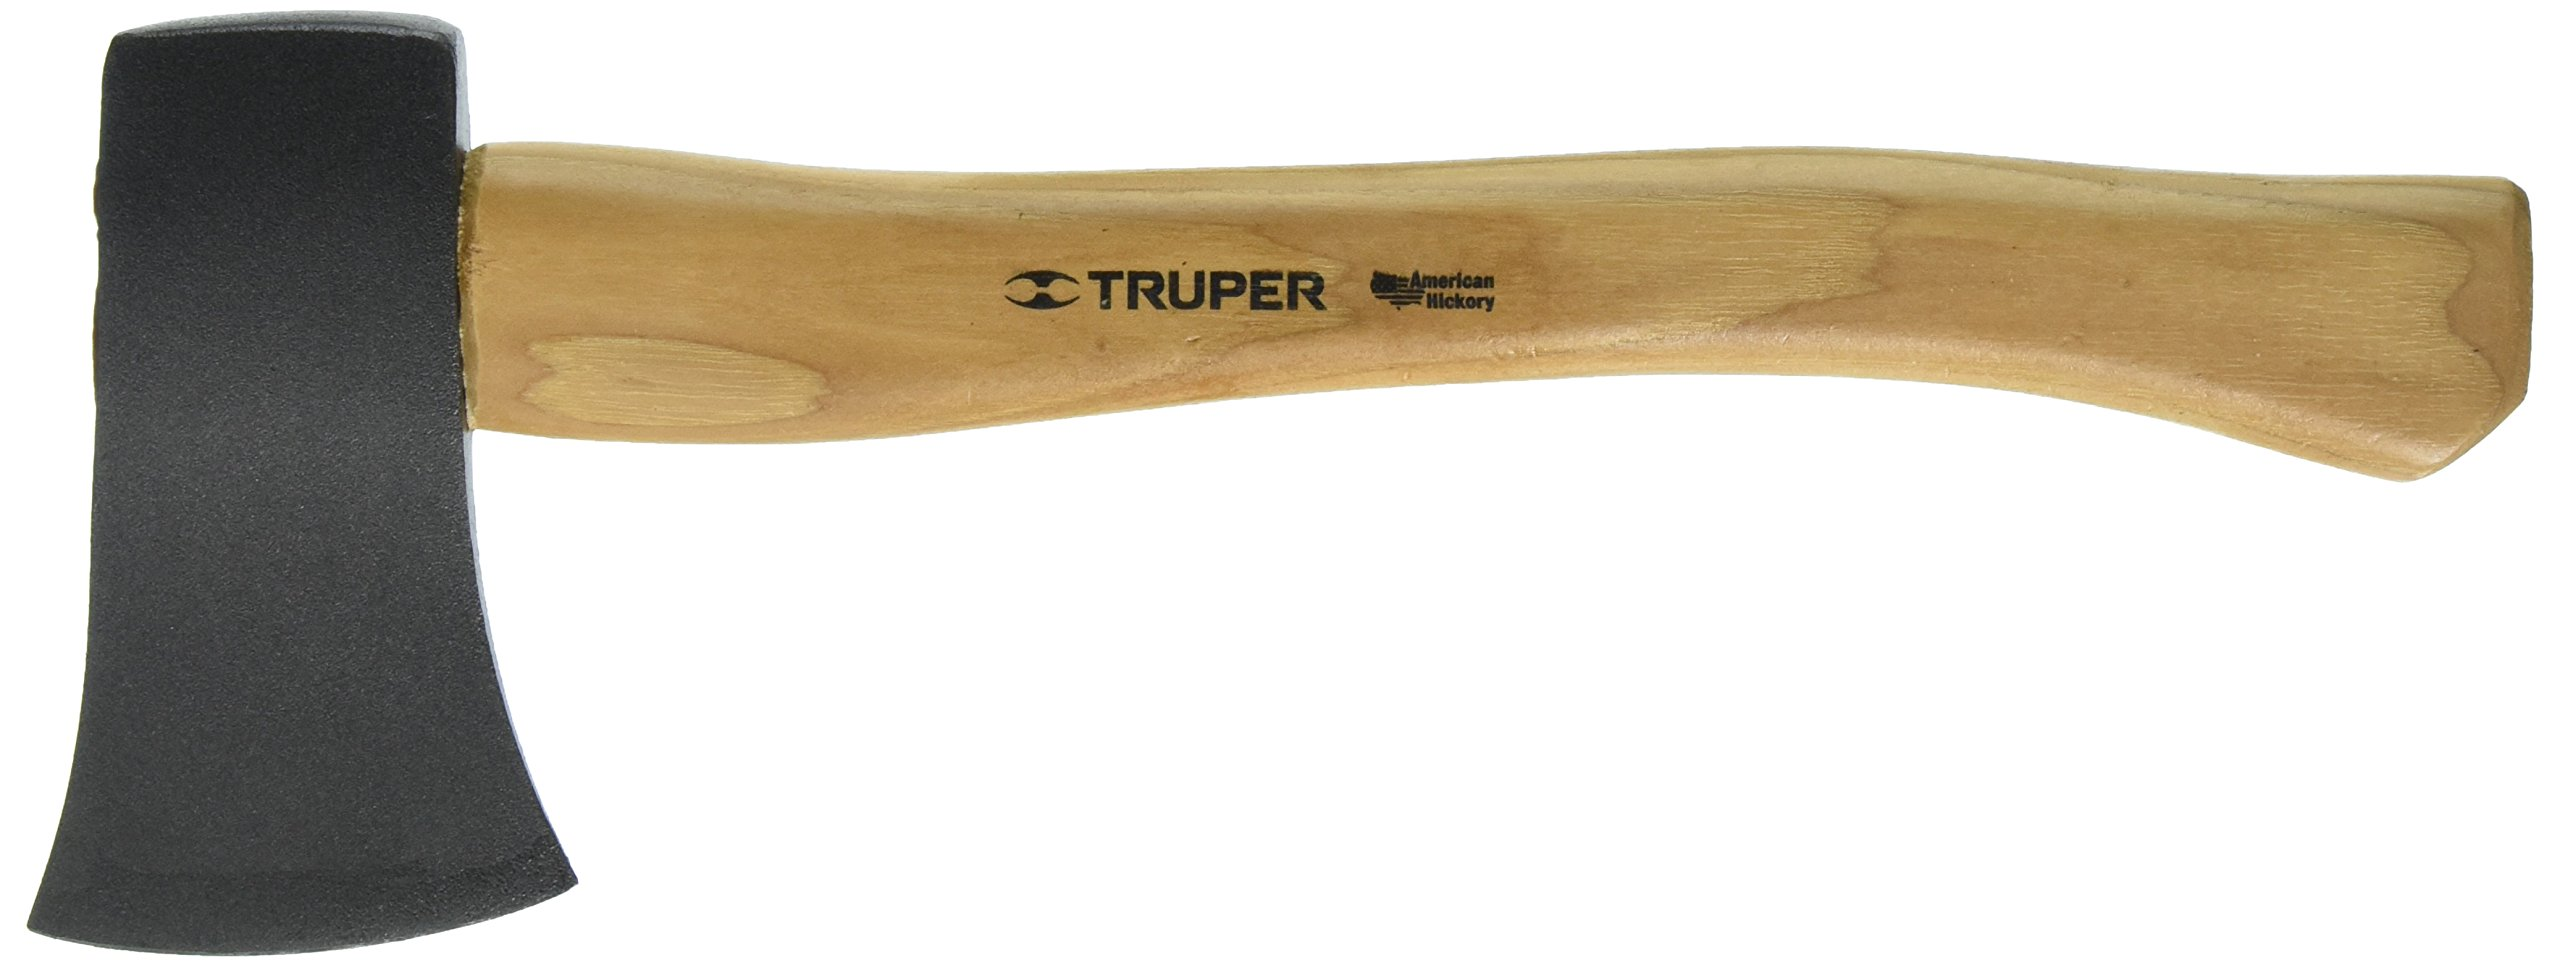 Truper 30514 1-1/4-Pound Camp Axe, Hickory Handle, 14-Inch